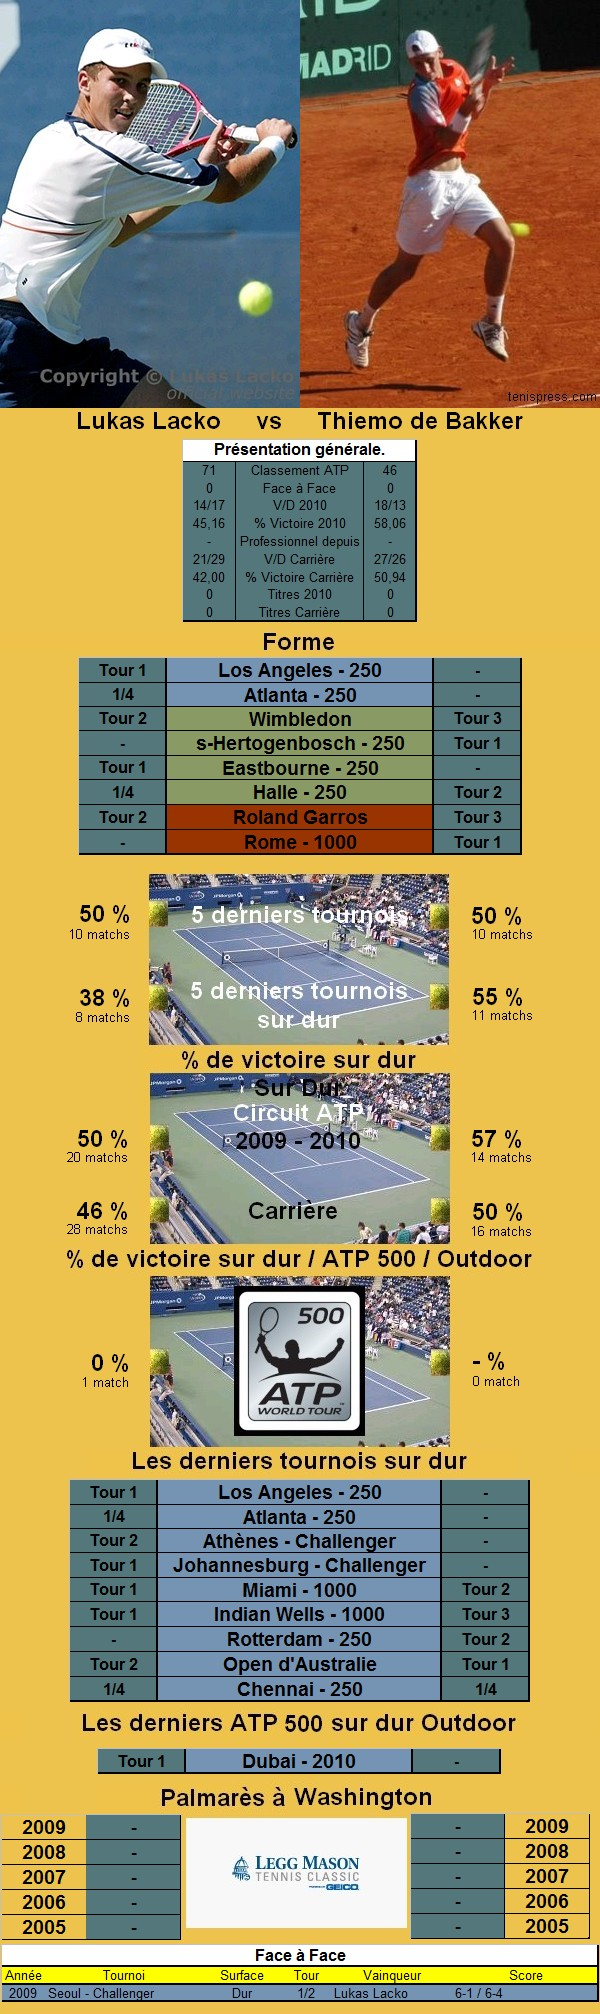 Statistiques tennis de Lacko contre de Bakker à Washington